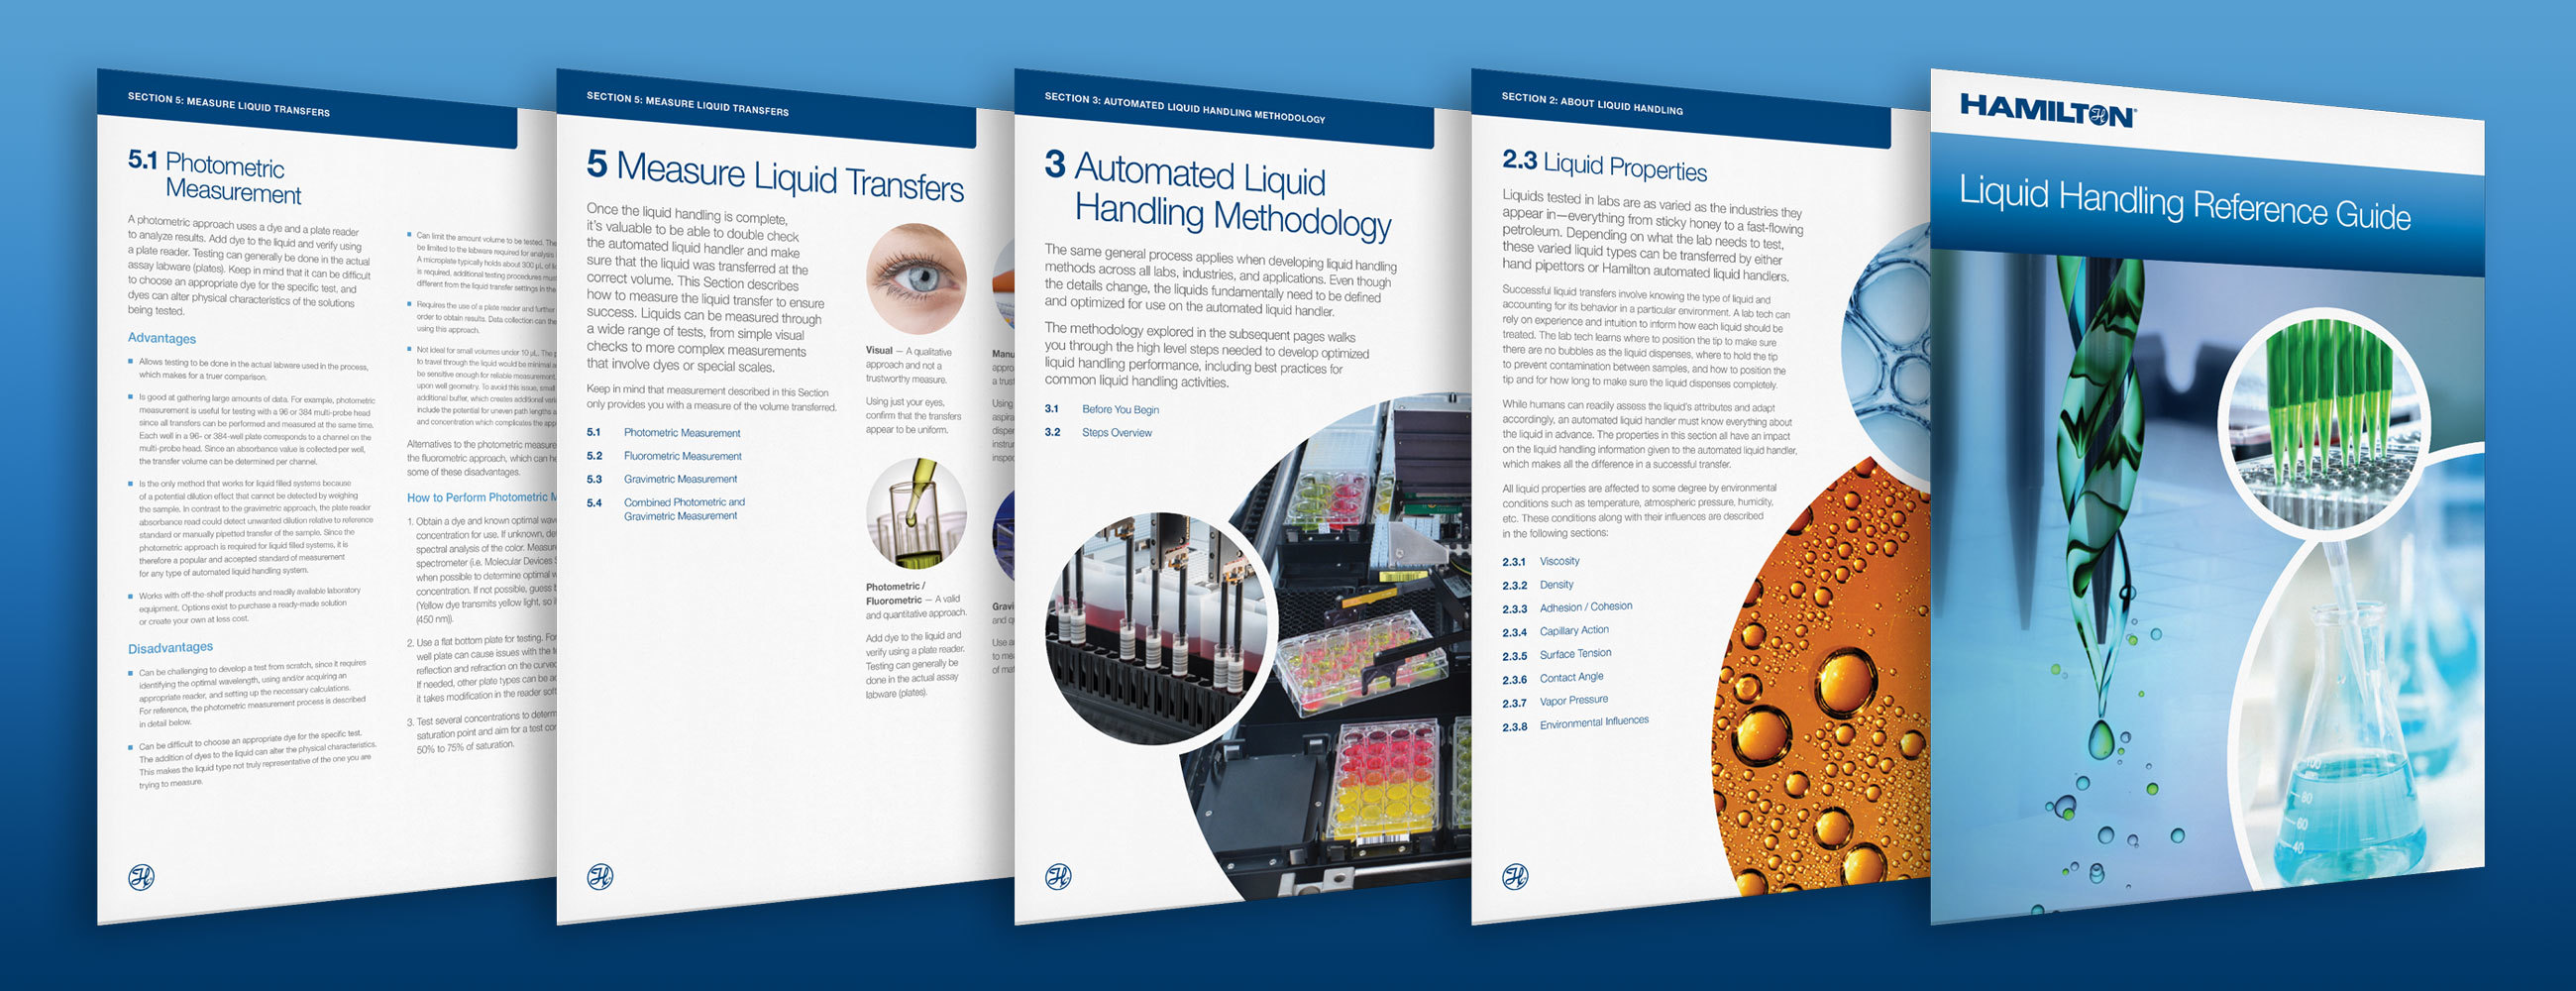 Pages from Hamilton's downloadable liquid handling guide